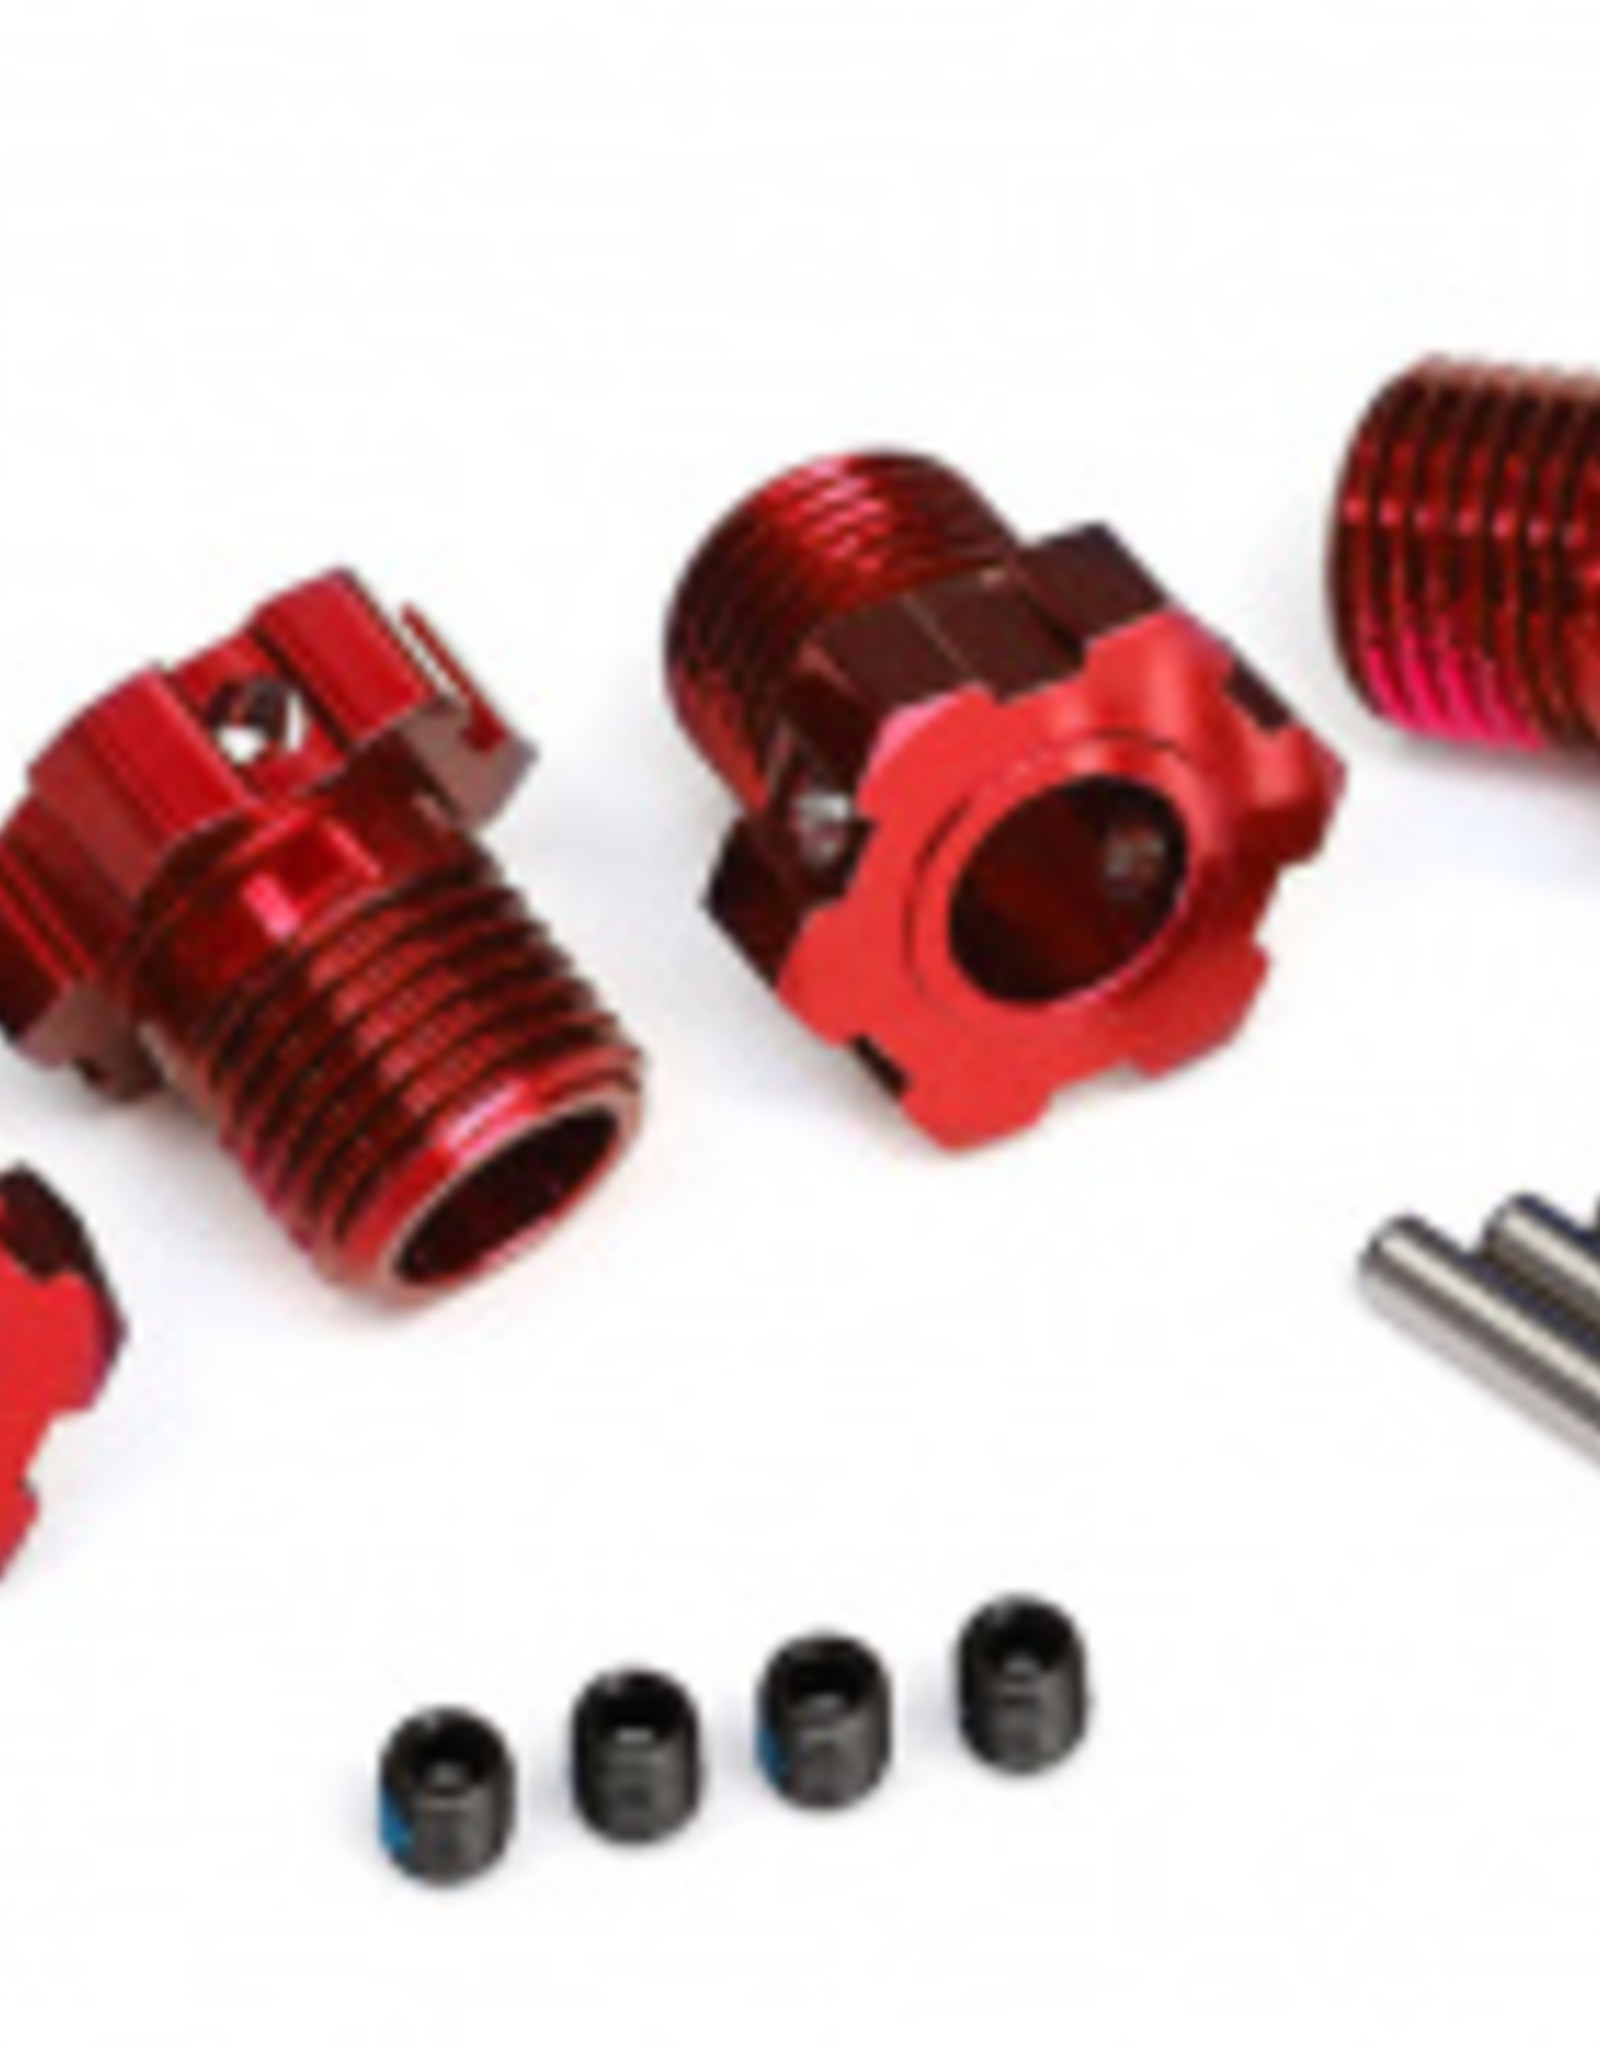 Traxxas Traxxas Wheel hubs, splined, 17mm (red-anodized) (4)/ 4x5 GS (4)/ 3x14mm pin (4)